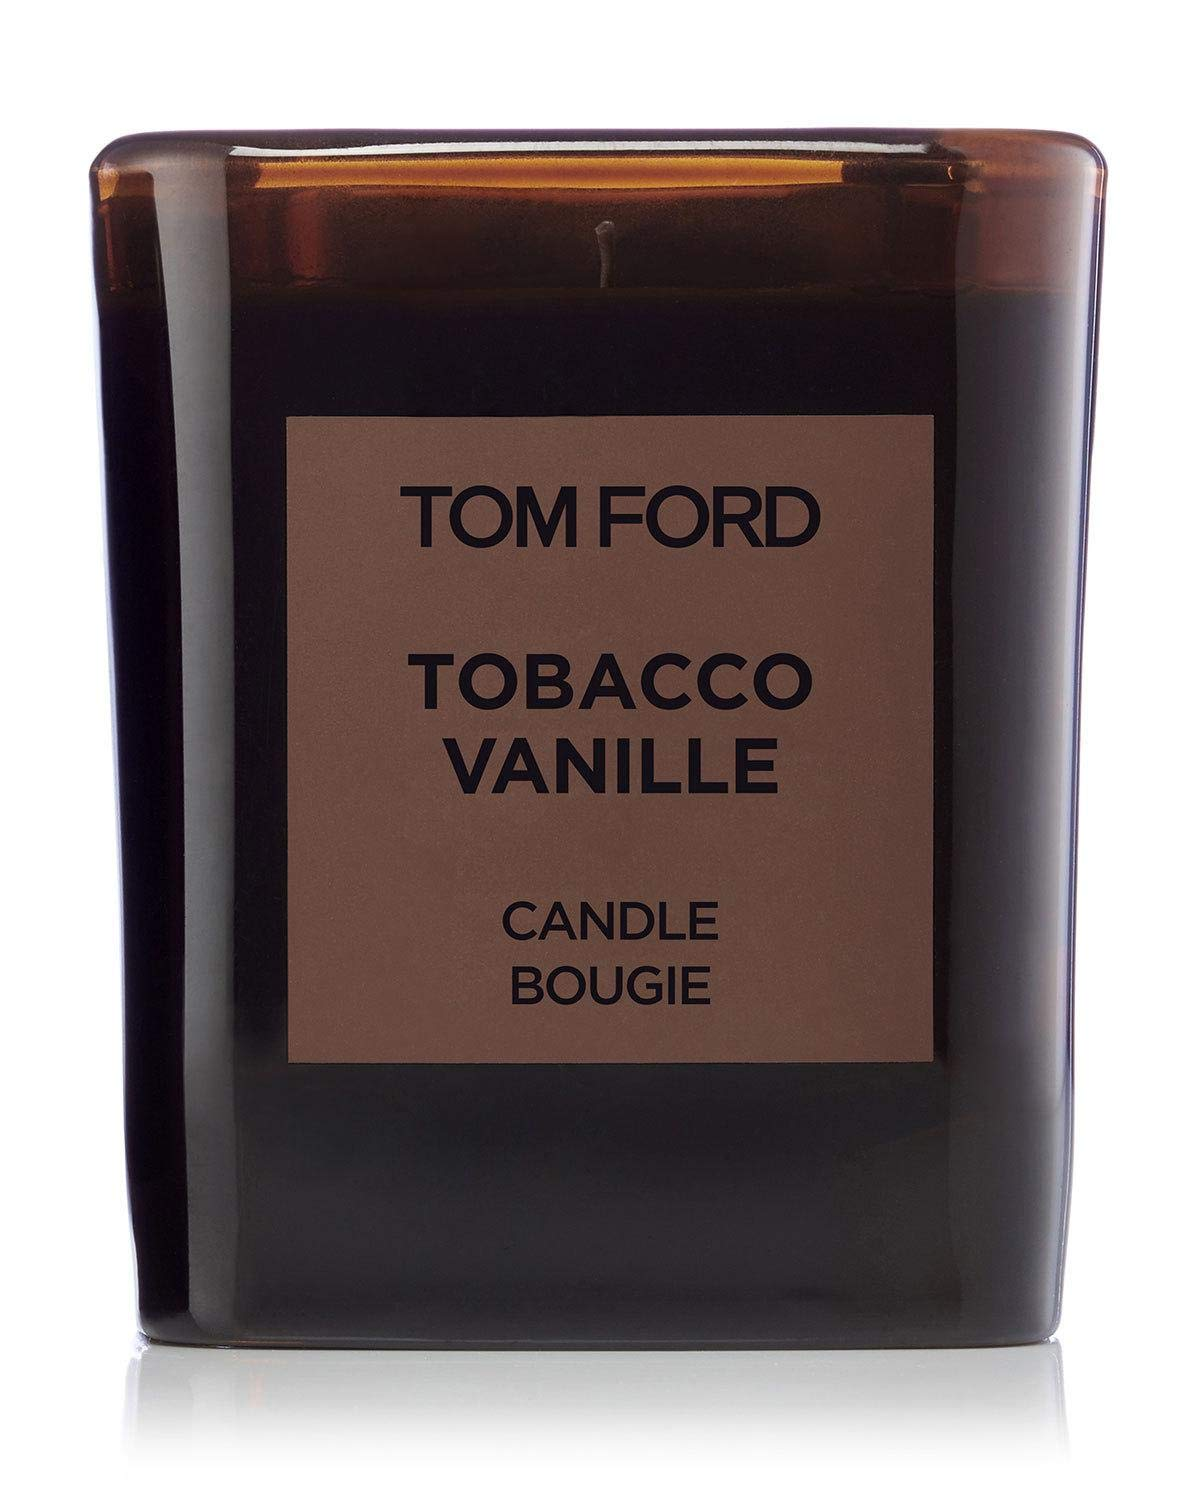 Vanille Candle Brand New and Genuine!